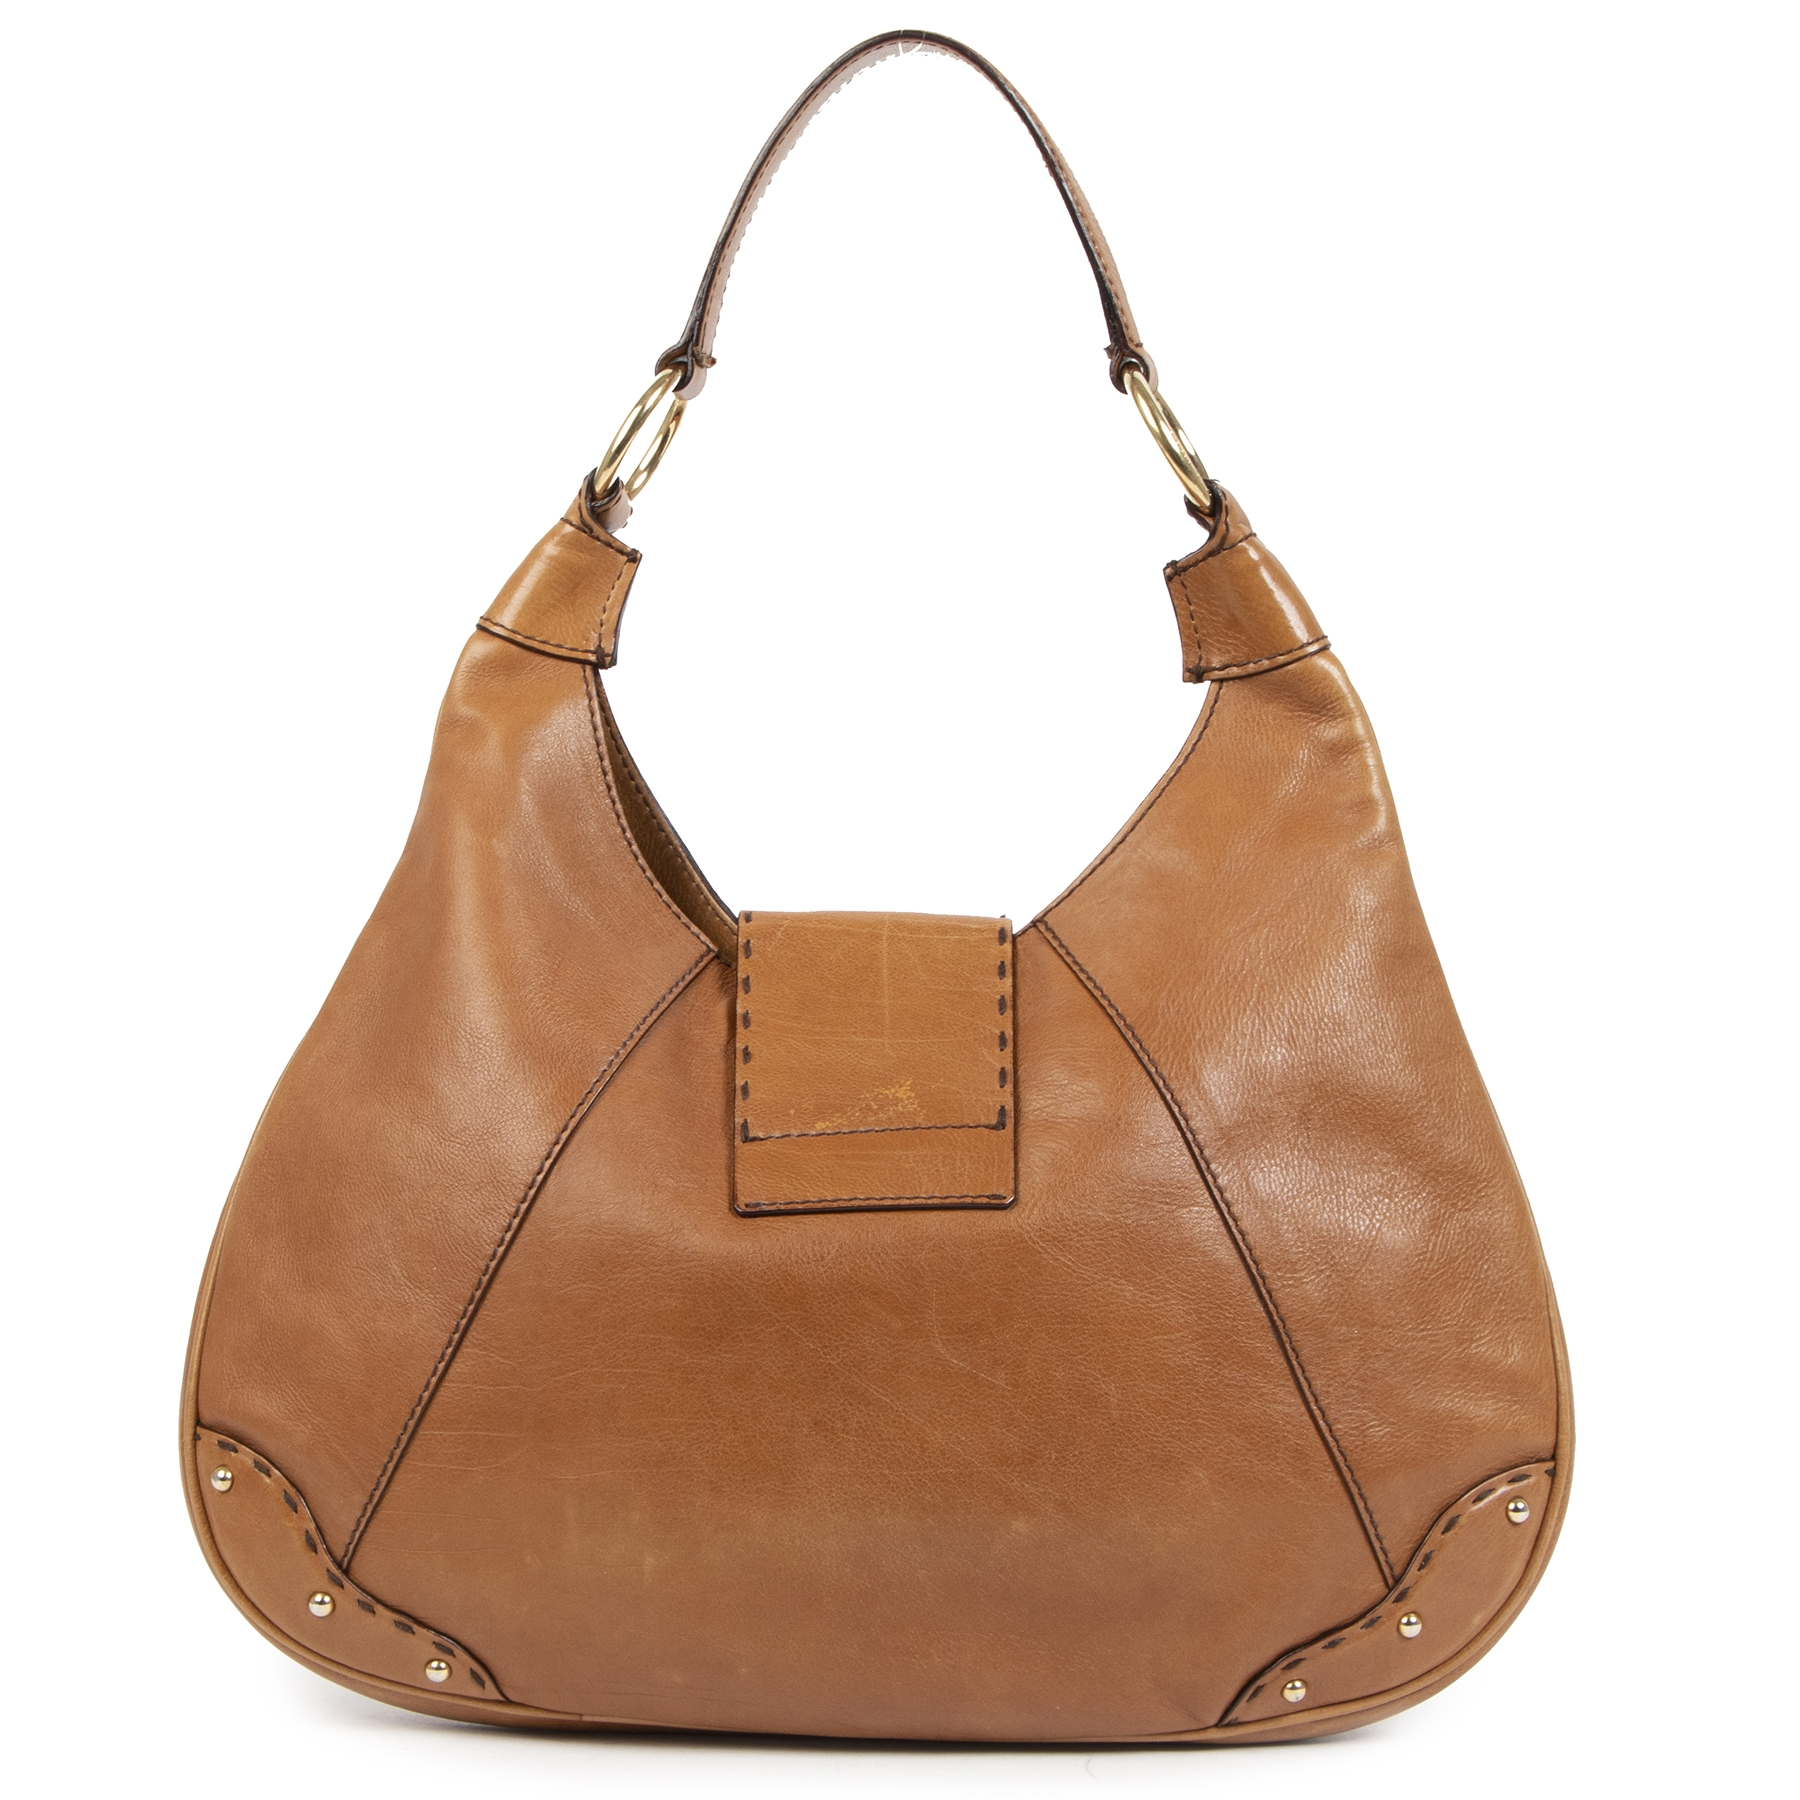 Authentieke tweedehands vintage Dolce & Gabbana Camel Shoulder Bag koop online webshop LabelLOV